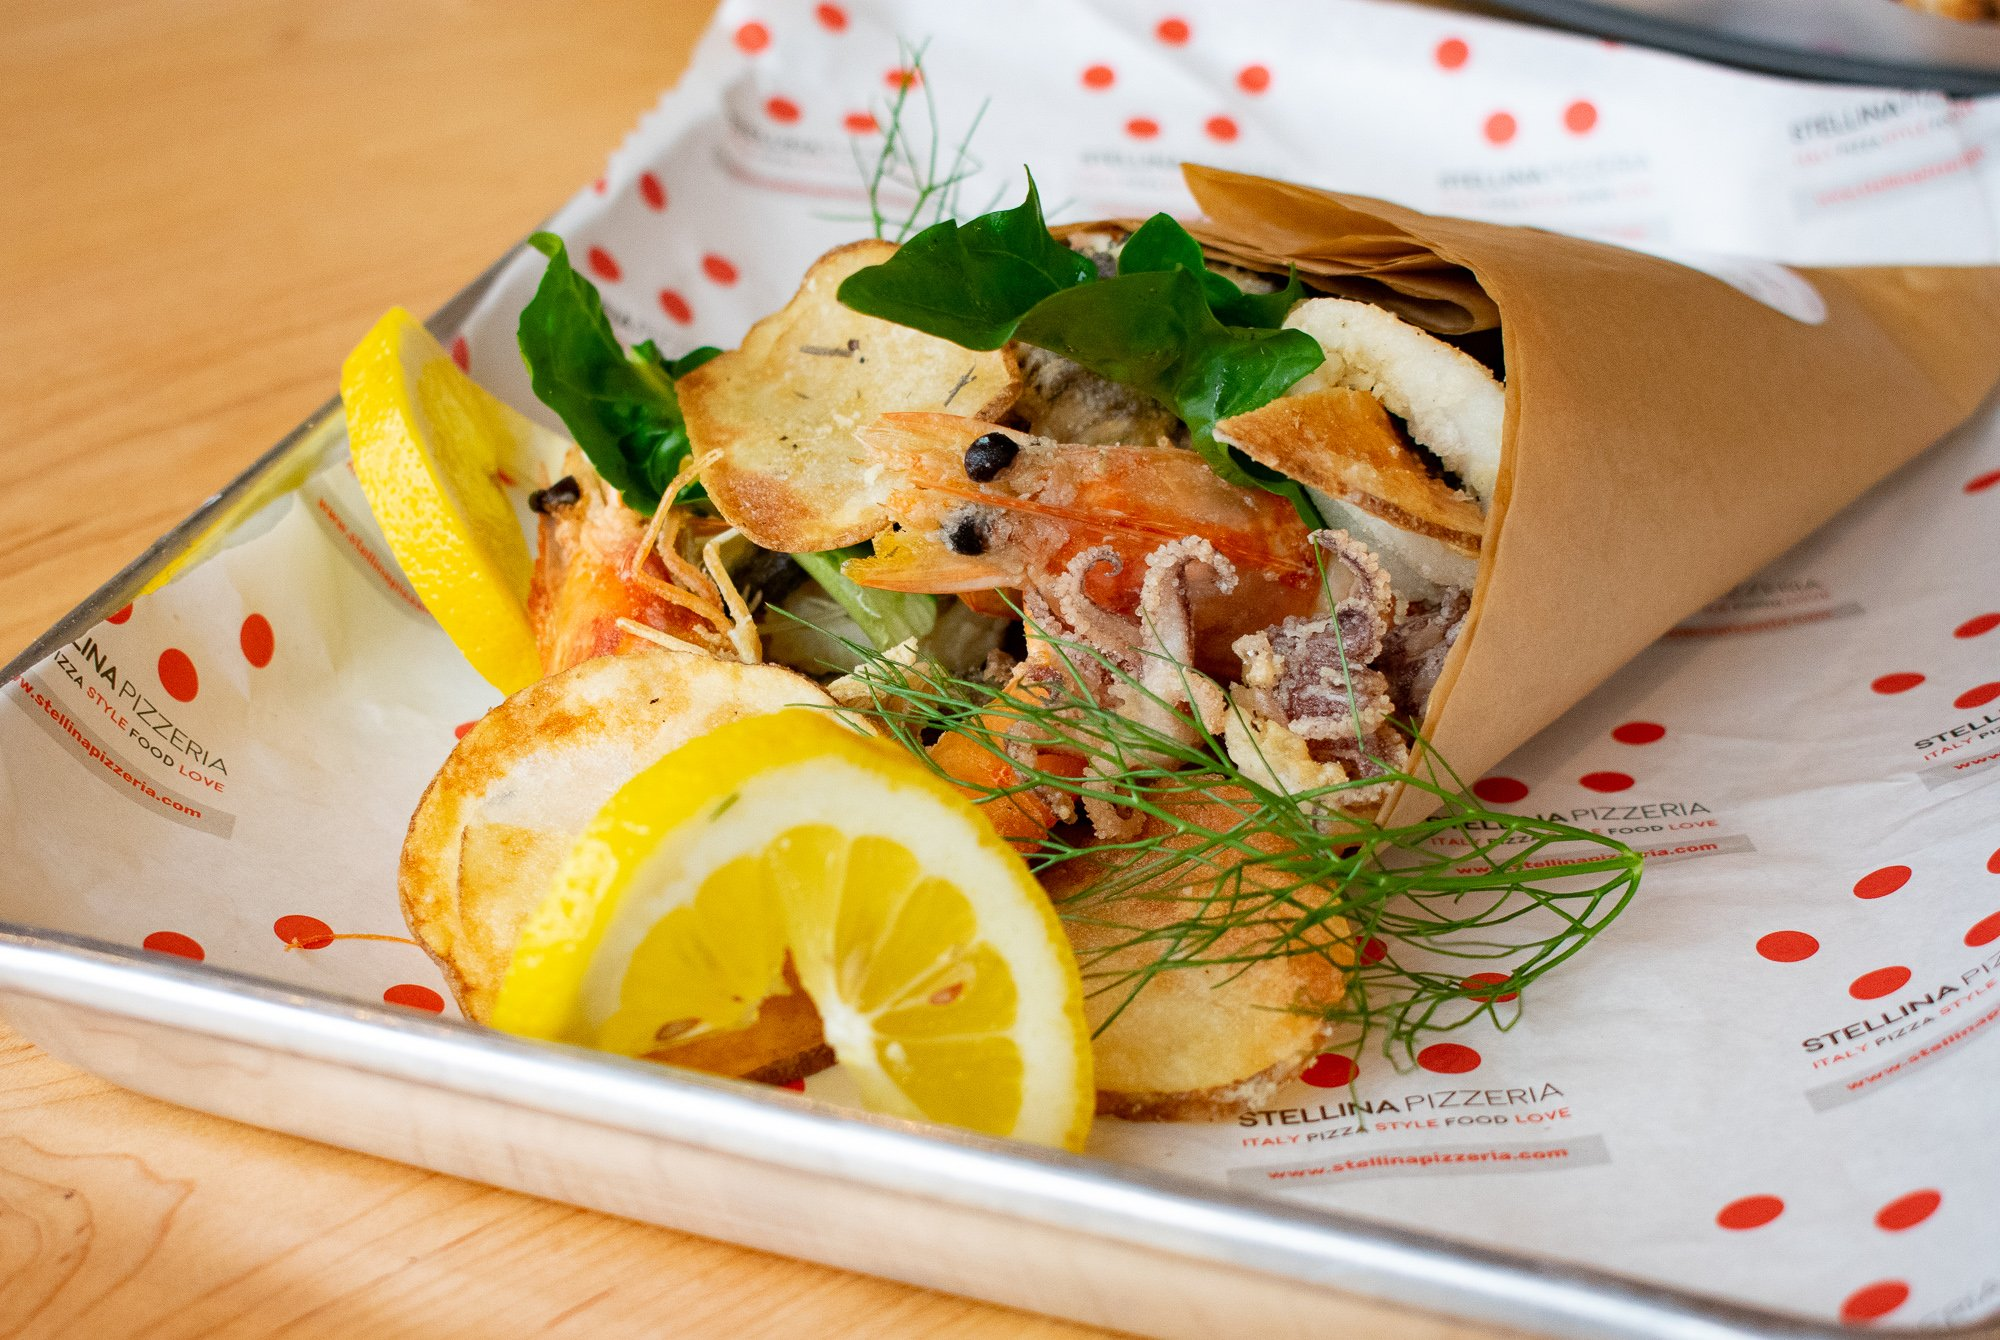 Seafood fritto misto is served in a paper cuoppo, inspired by Venini's trip to Puglia. Photograph by Meaghan Webster.